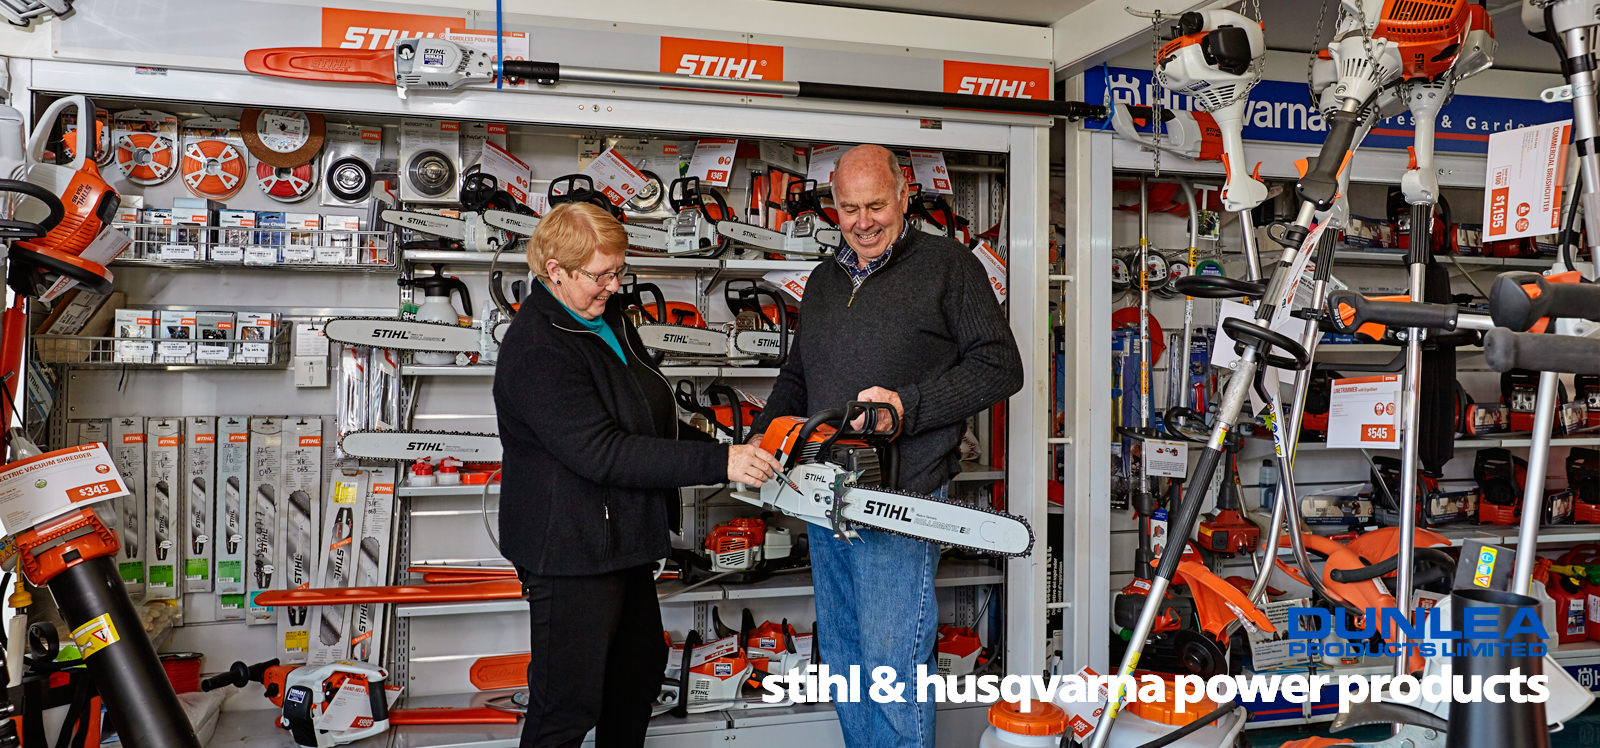 Dunlea Products Stihl & Husqvarna sales